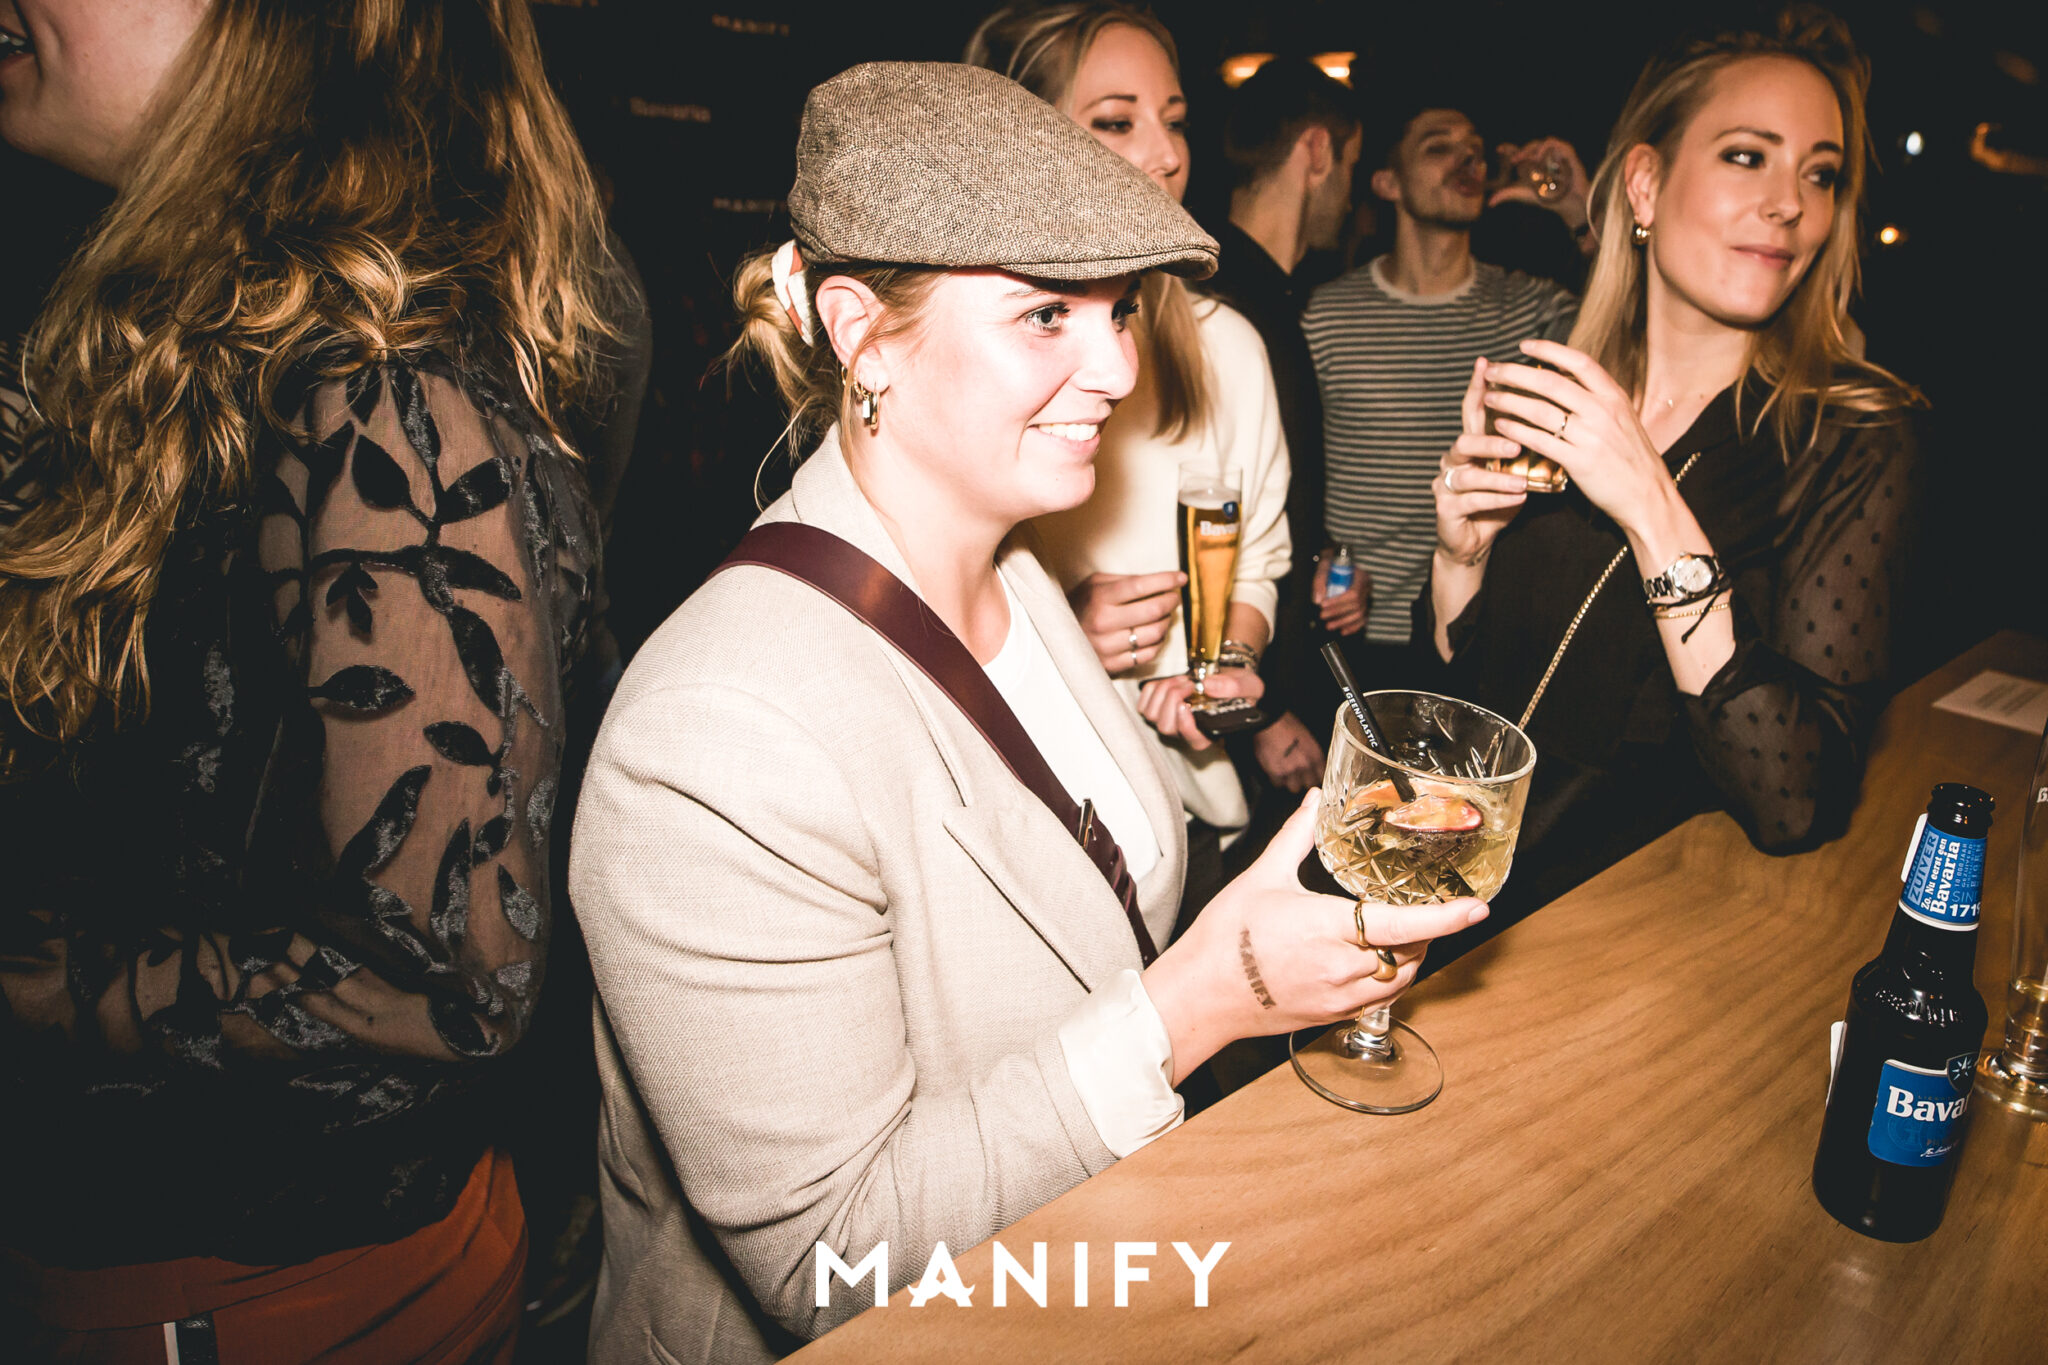 Manify_Out_of_office_Loods61_07-01-20_WM-48